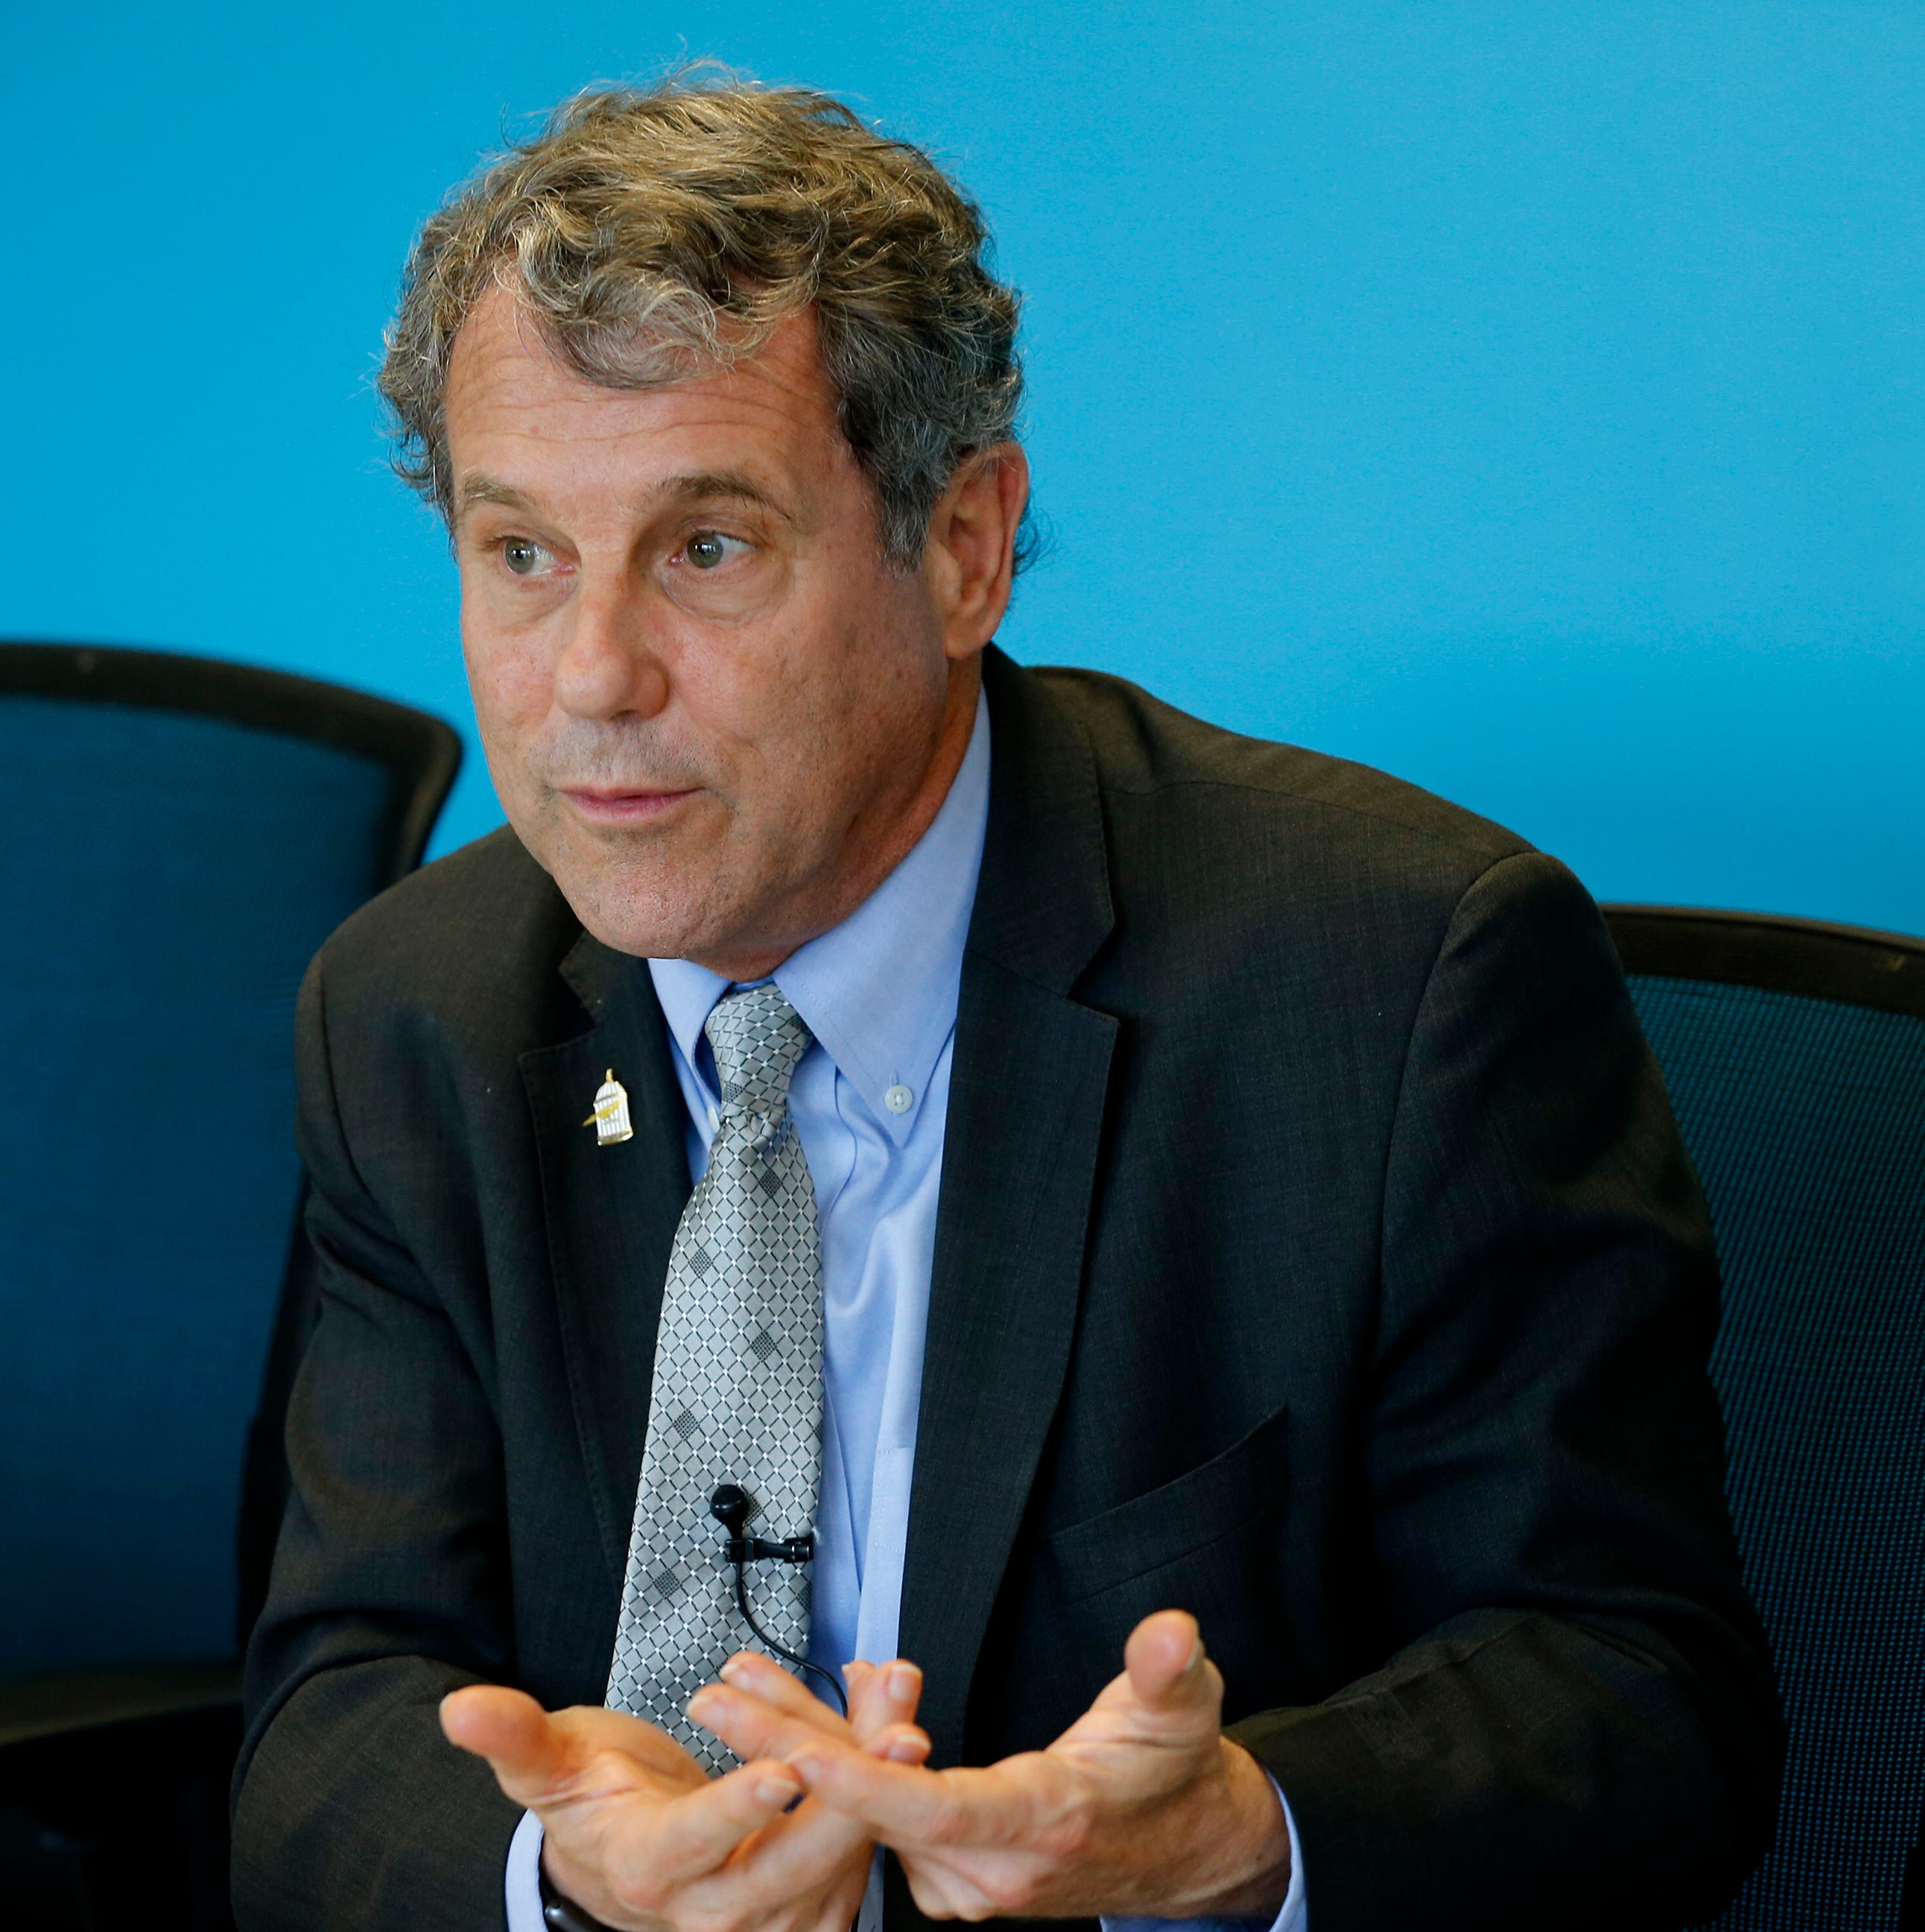 Ohio Senate race: Sherrod Brown accused of  'unwanted' advance against woman in '80s. Brown threatens legal action against Jim Renacci.